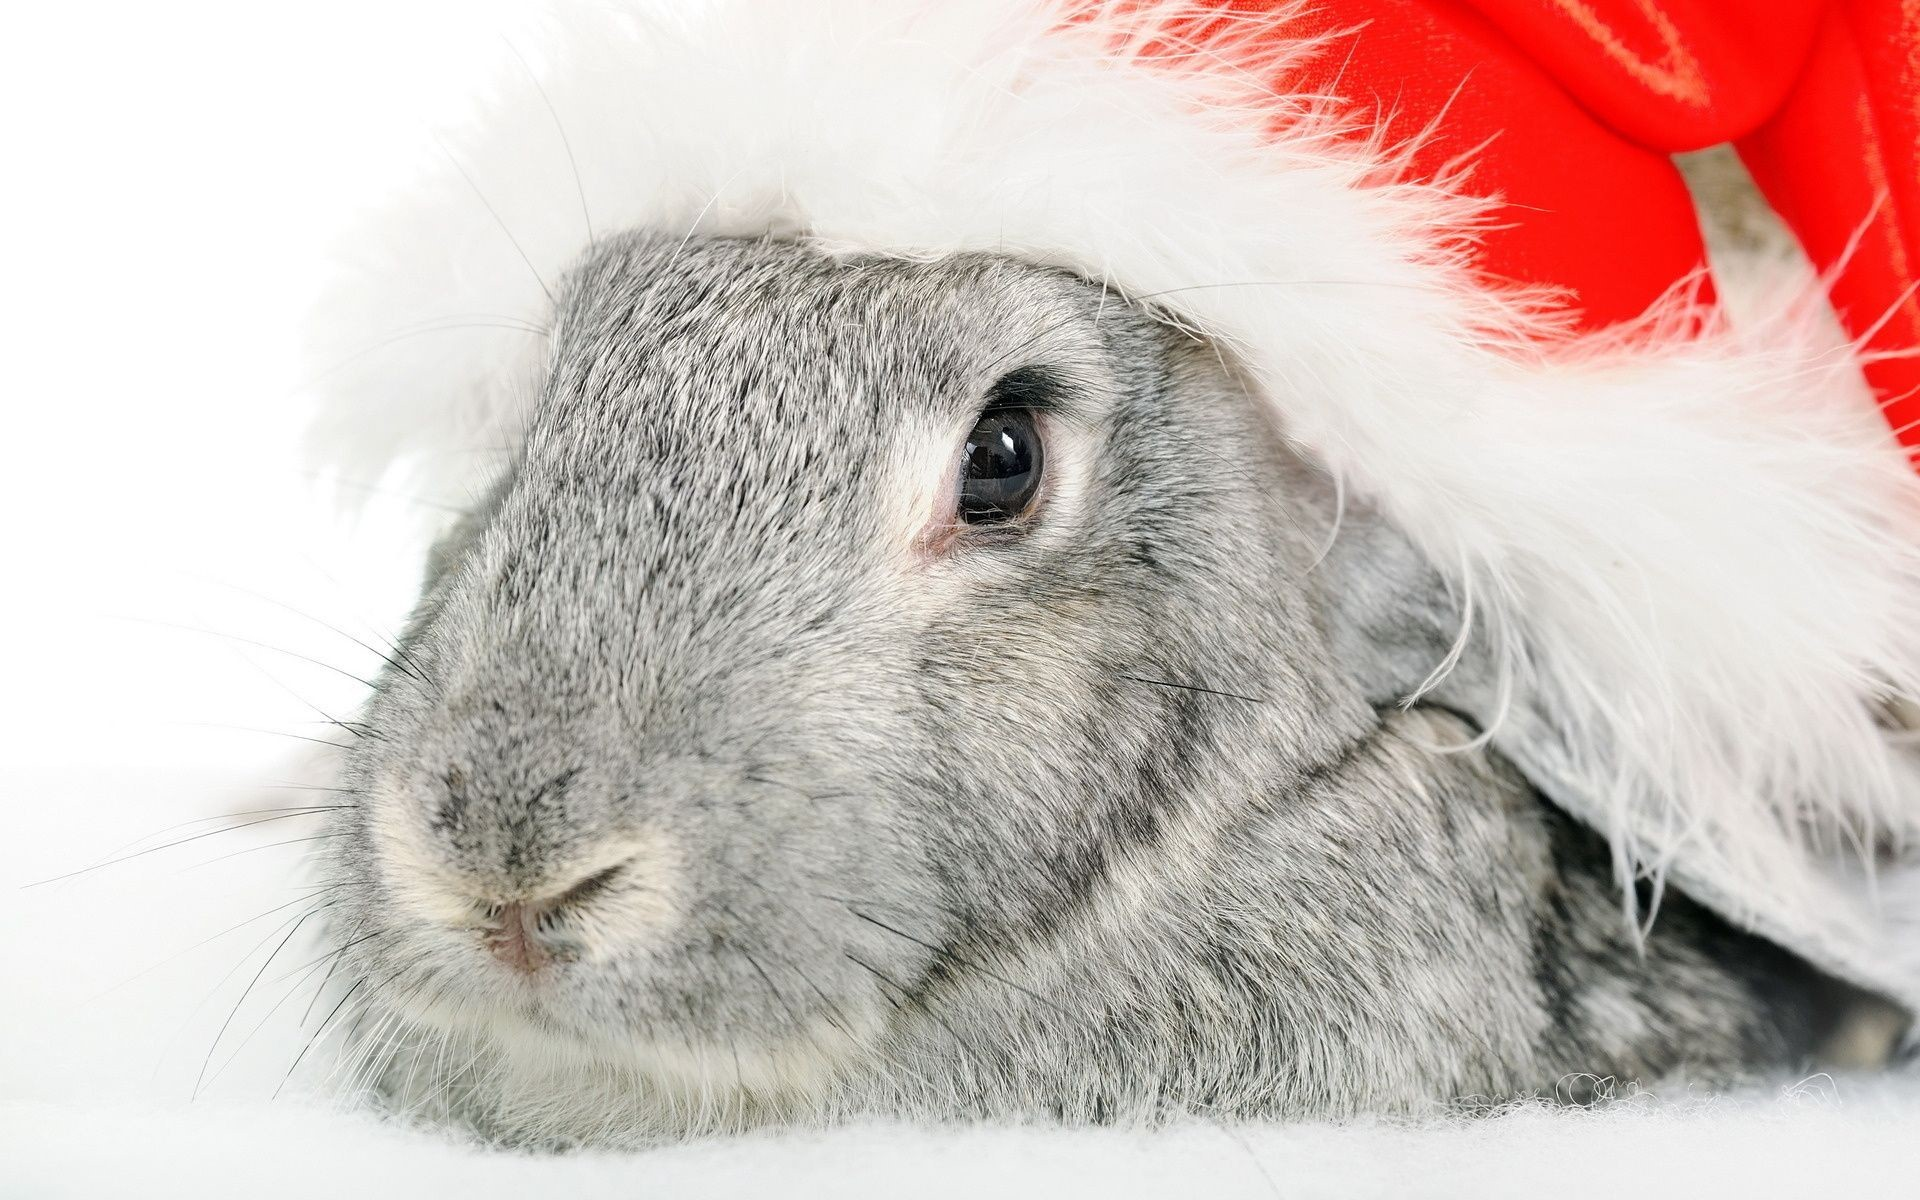 Christmas Rabbit Wallpaper HD Wallpapers 1920x1200